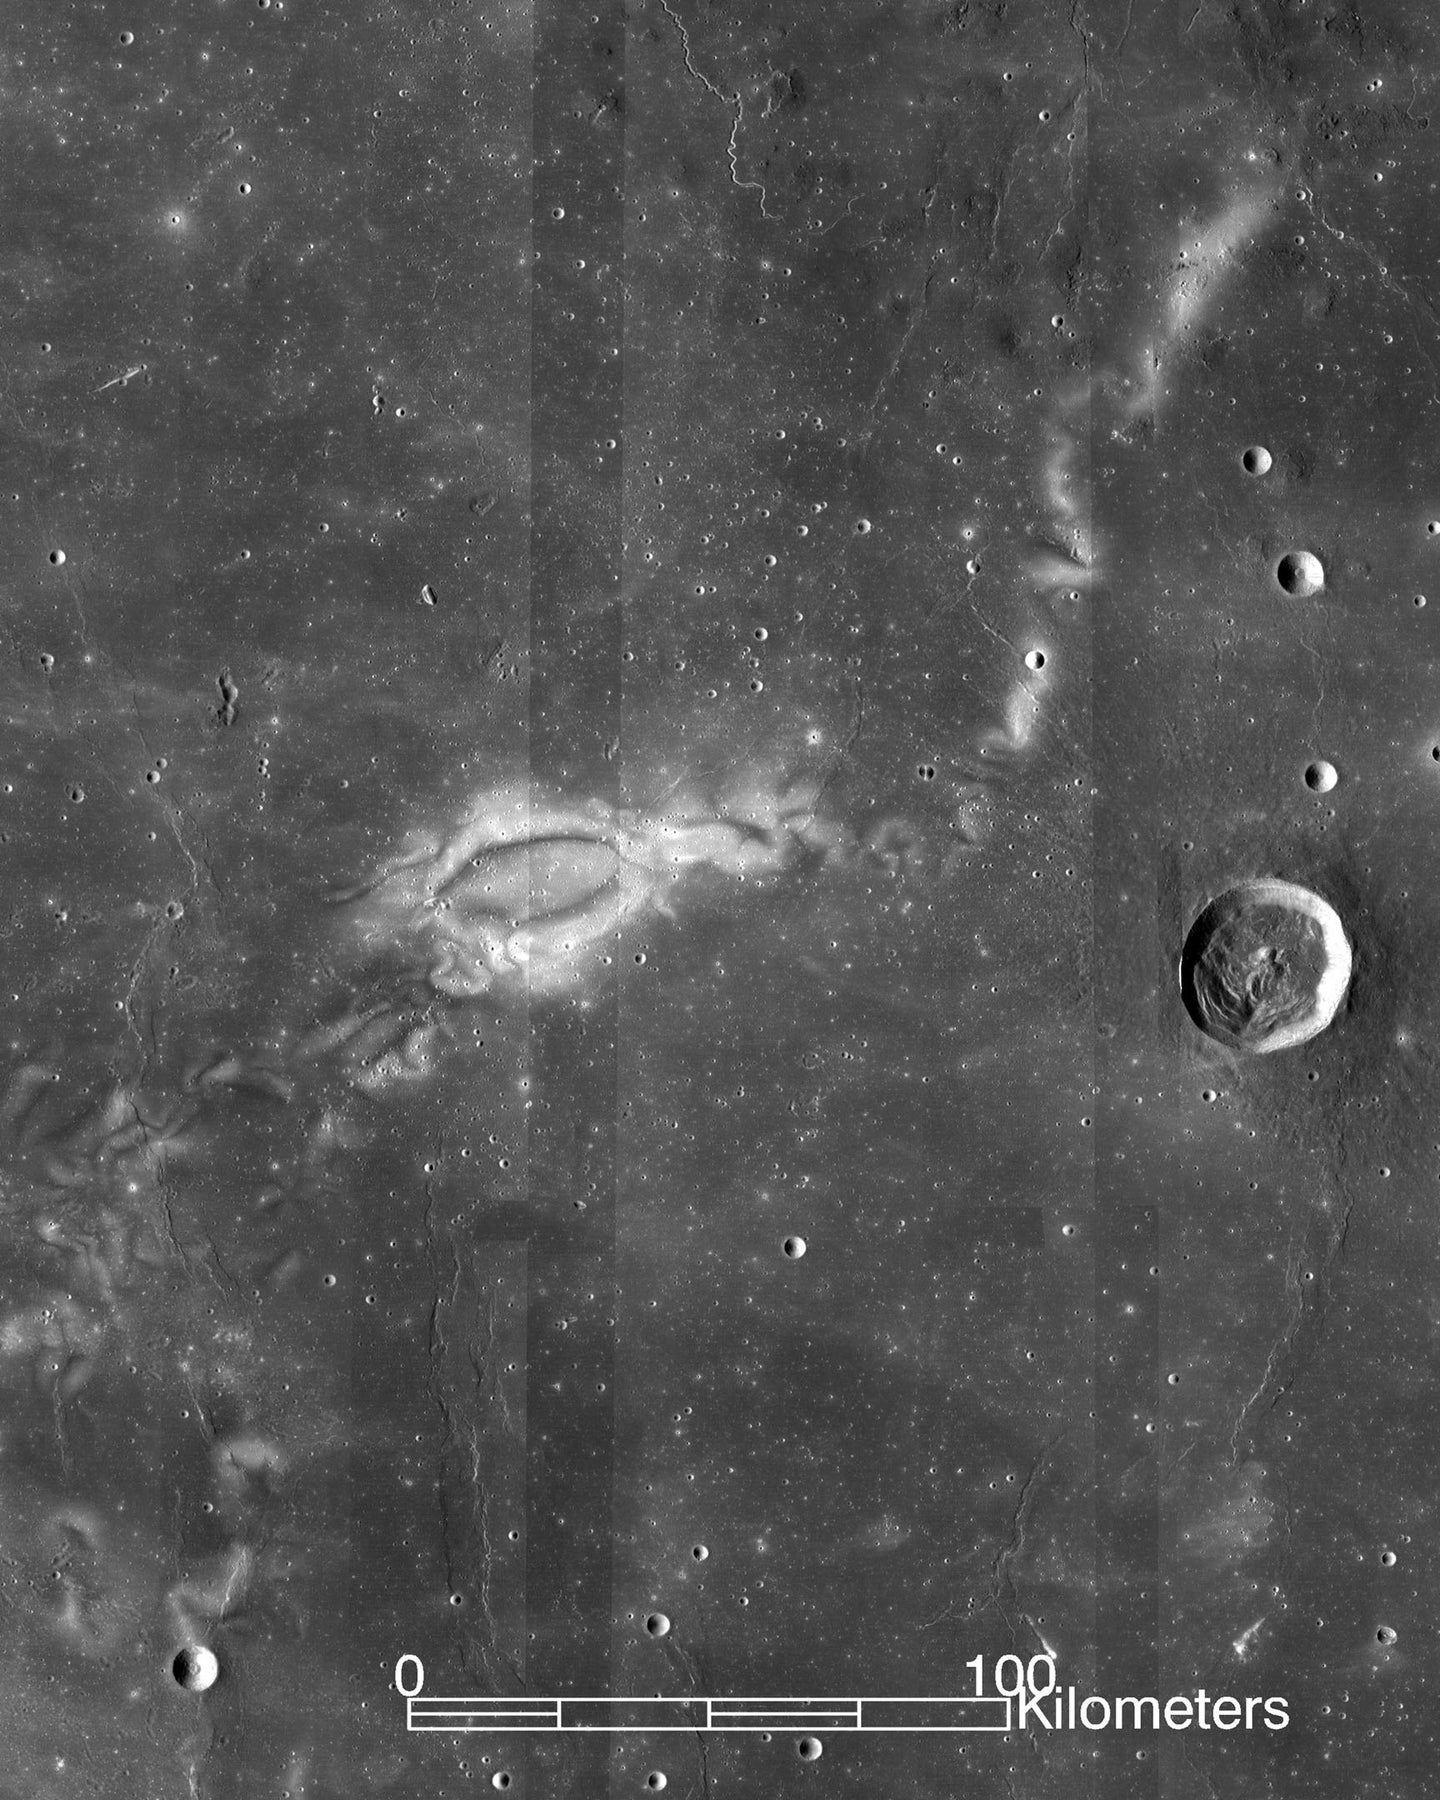 An image of Reiner Gamma on the moon.